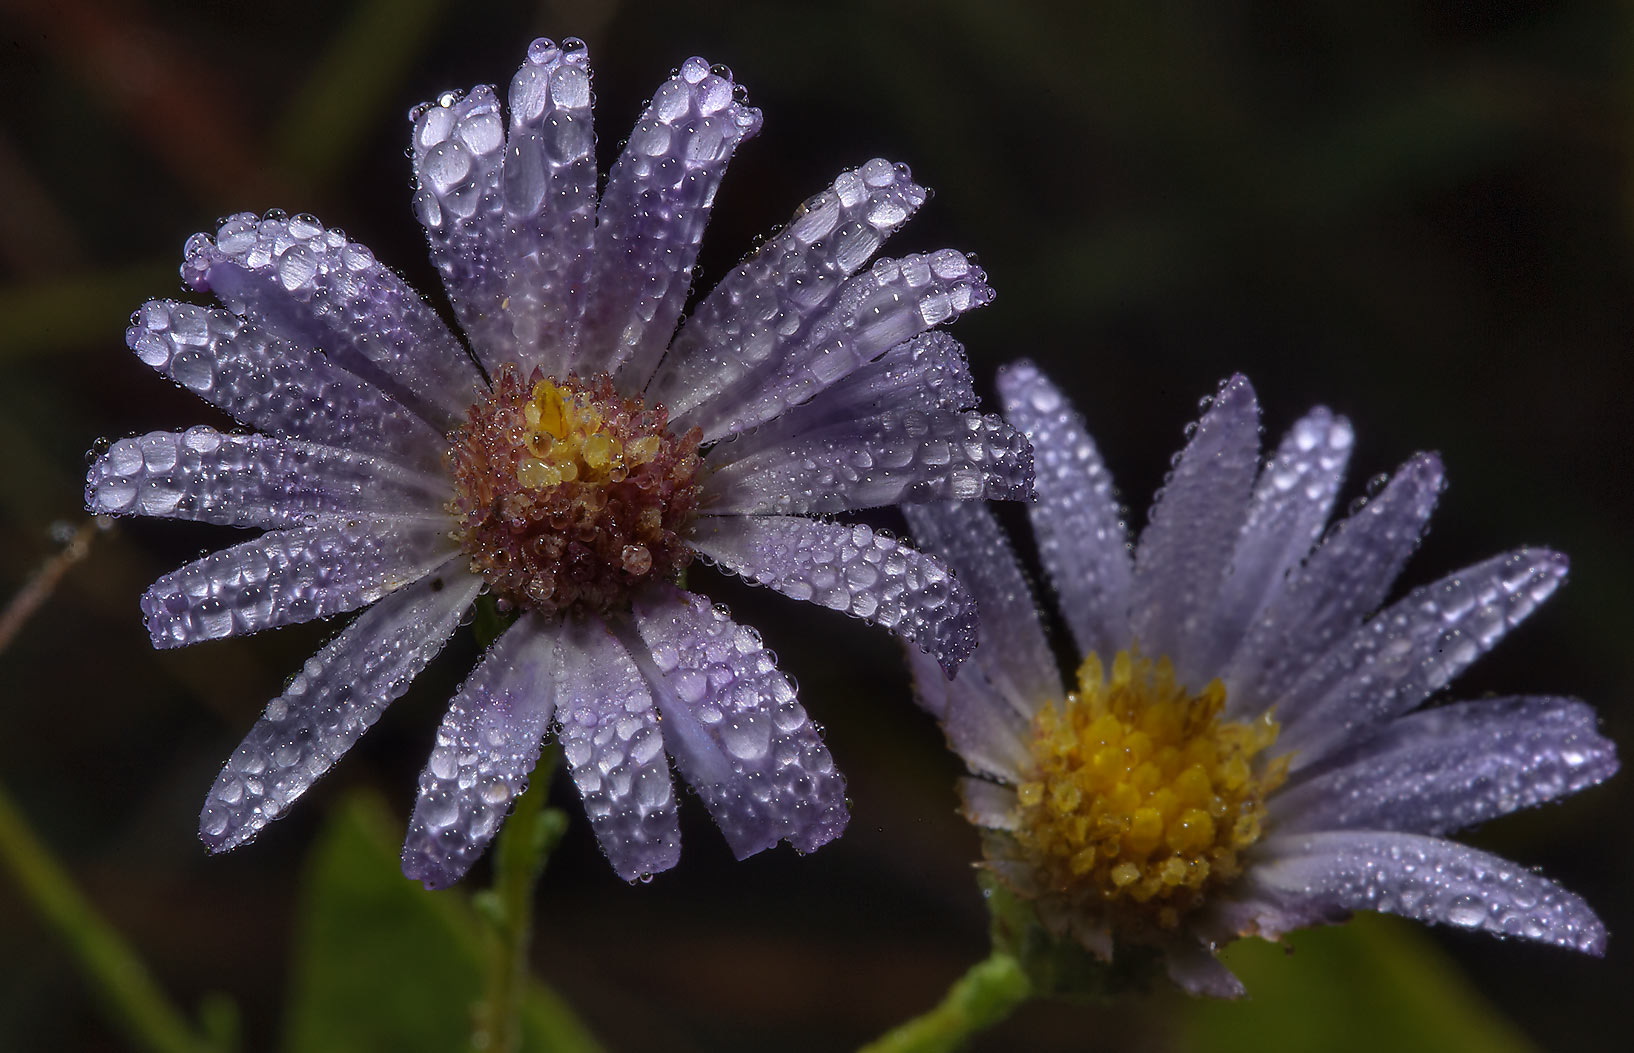 Photo 1290 05 Blue Aster Flowers In Dew On Moores Hill Outcrop At